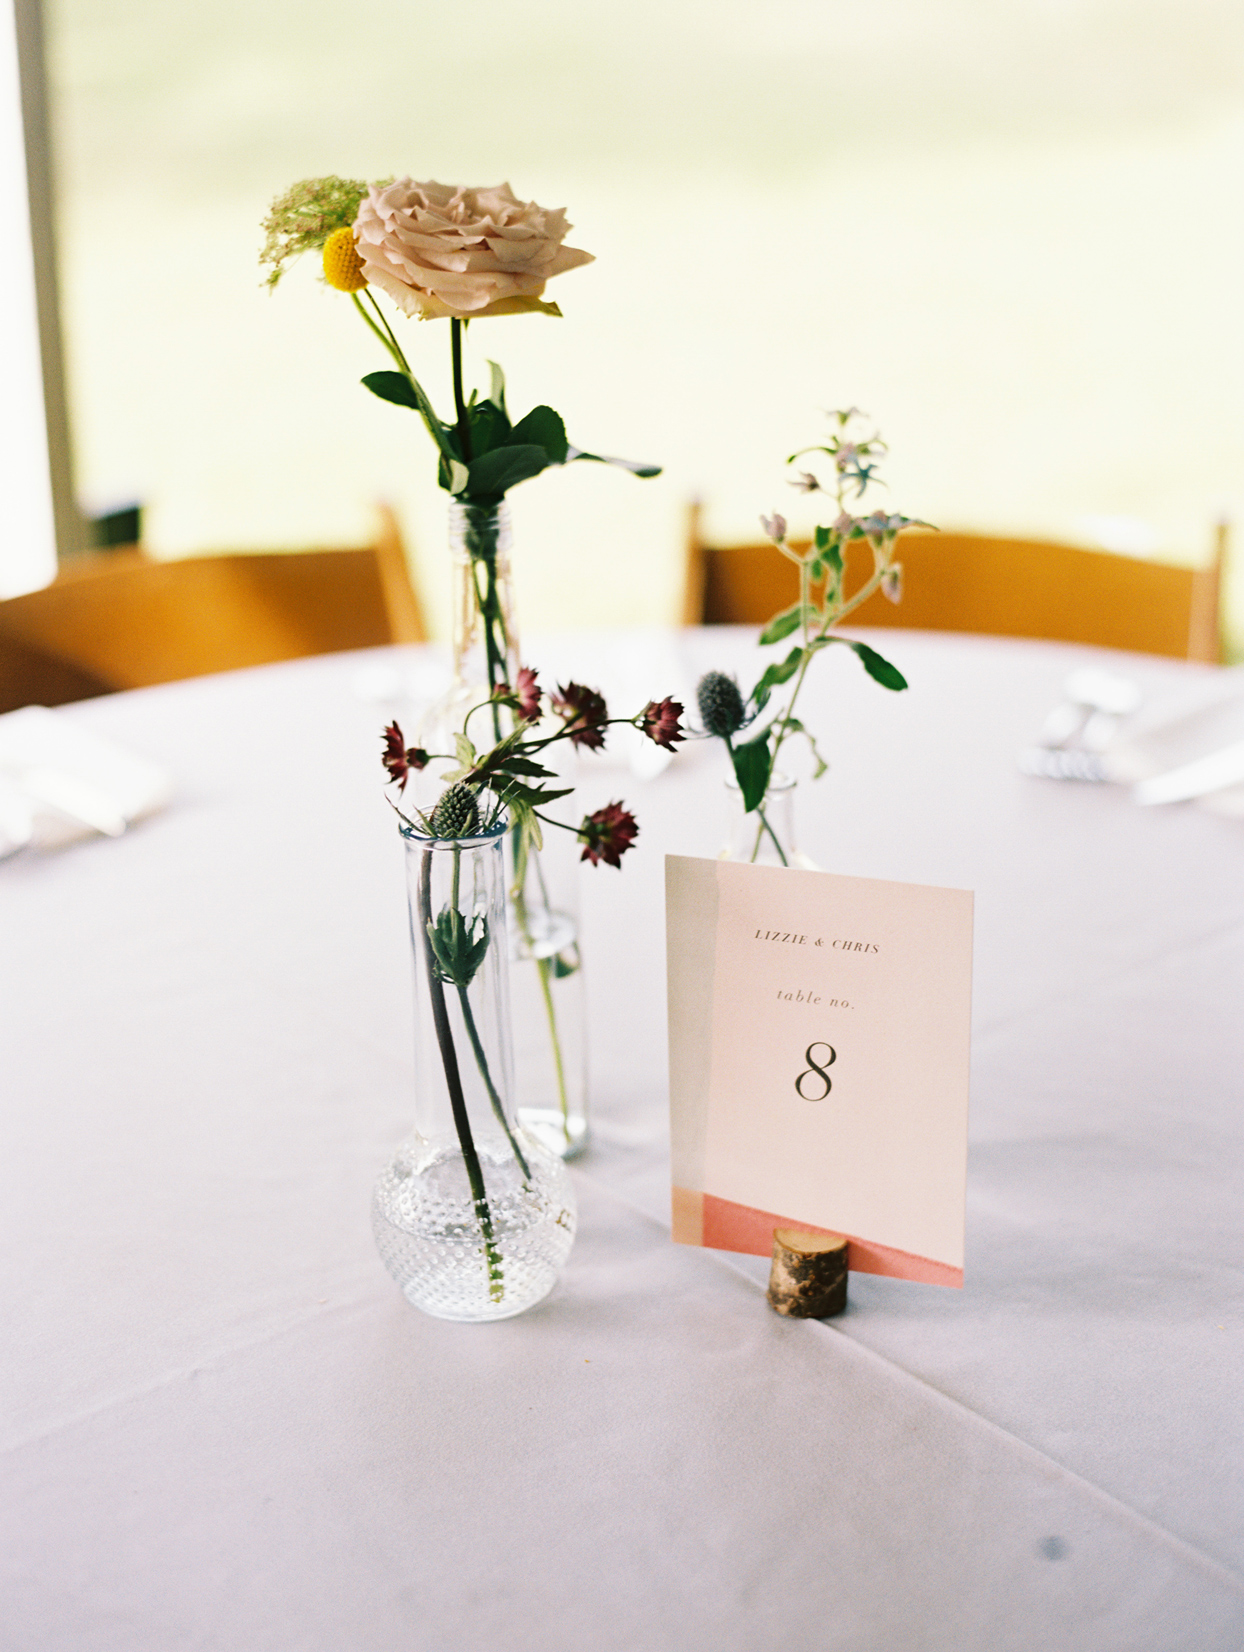 Table with white cloth with bud vases